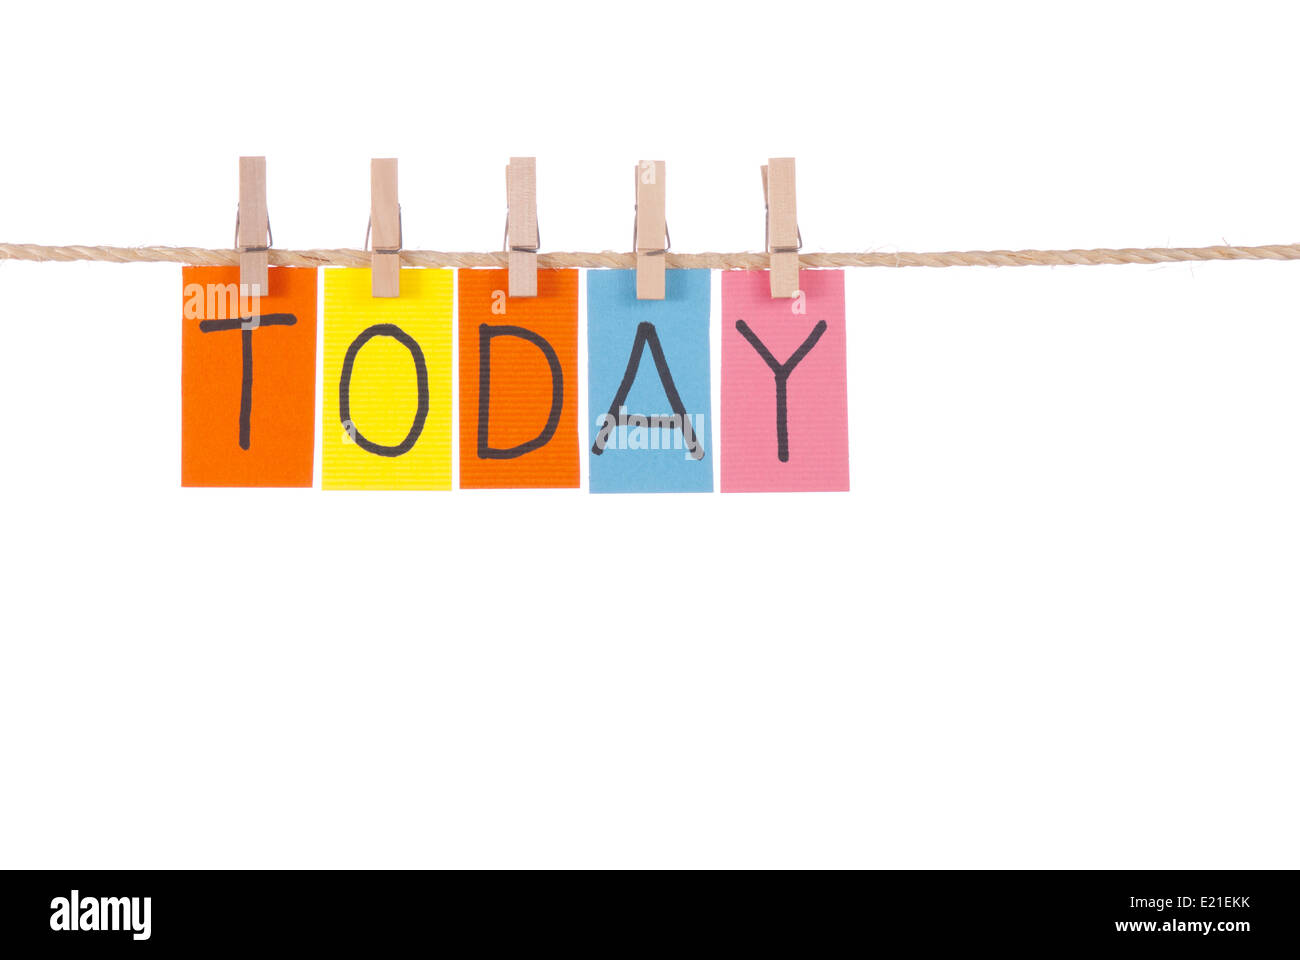 Today, Wooden peg  and colorful words - Stock Image